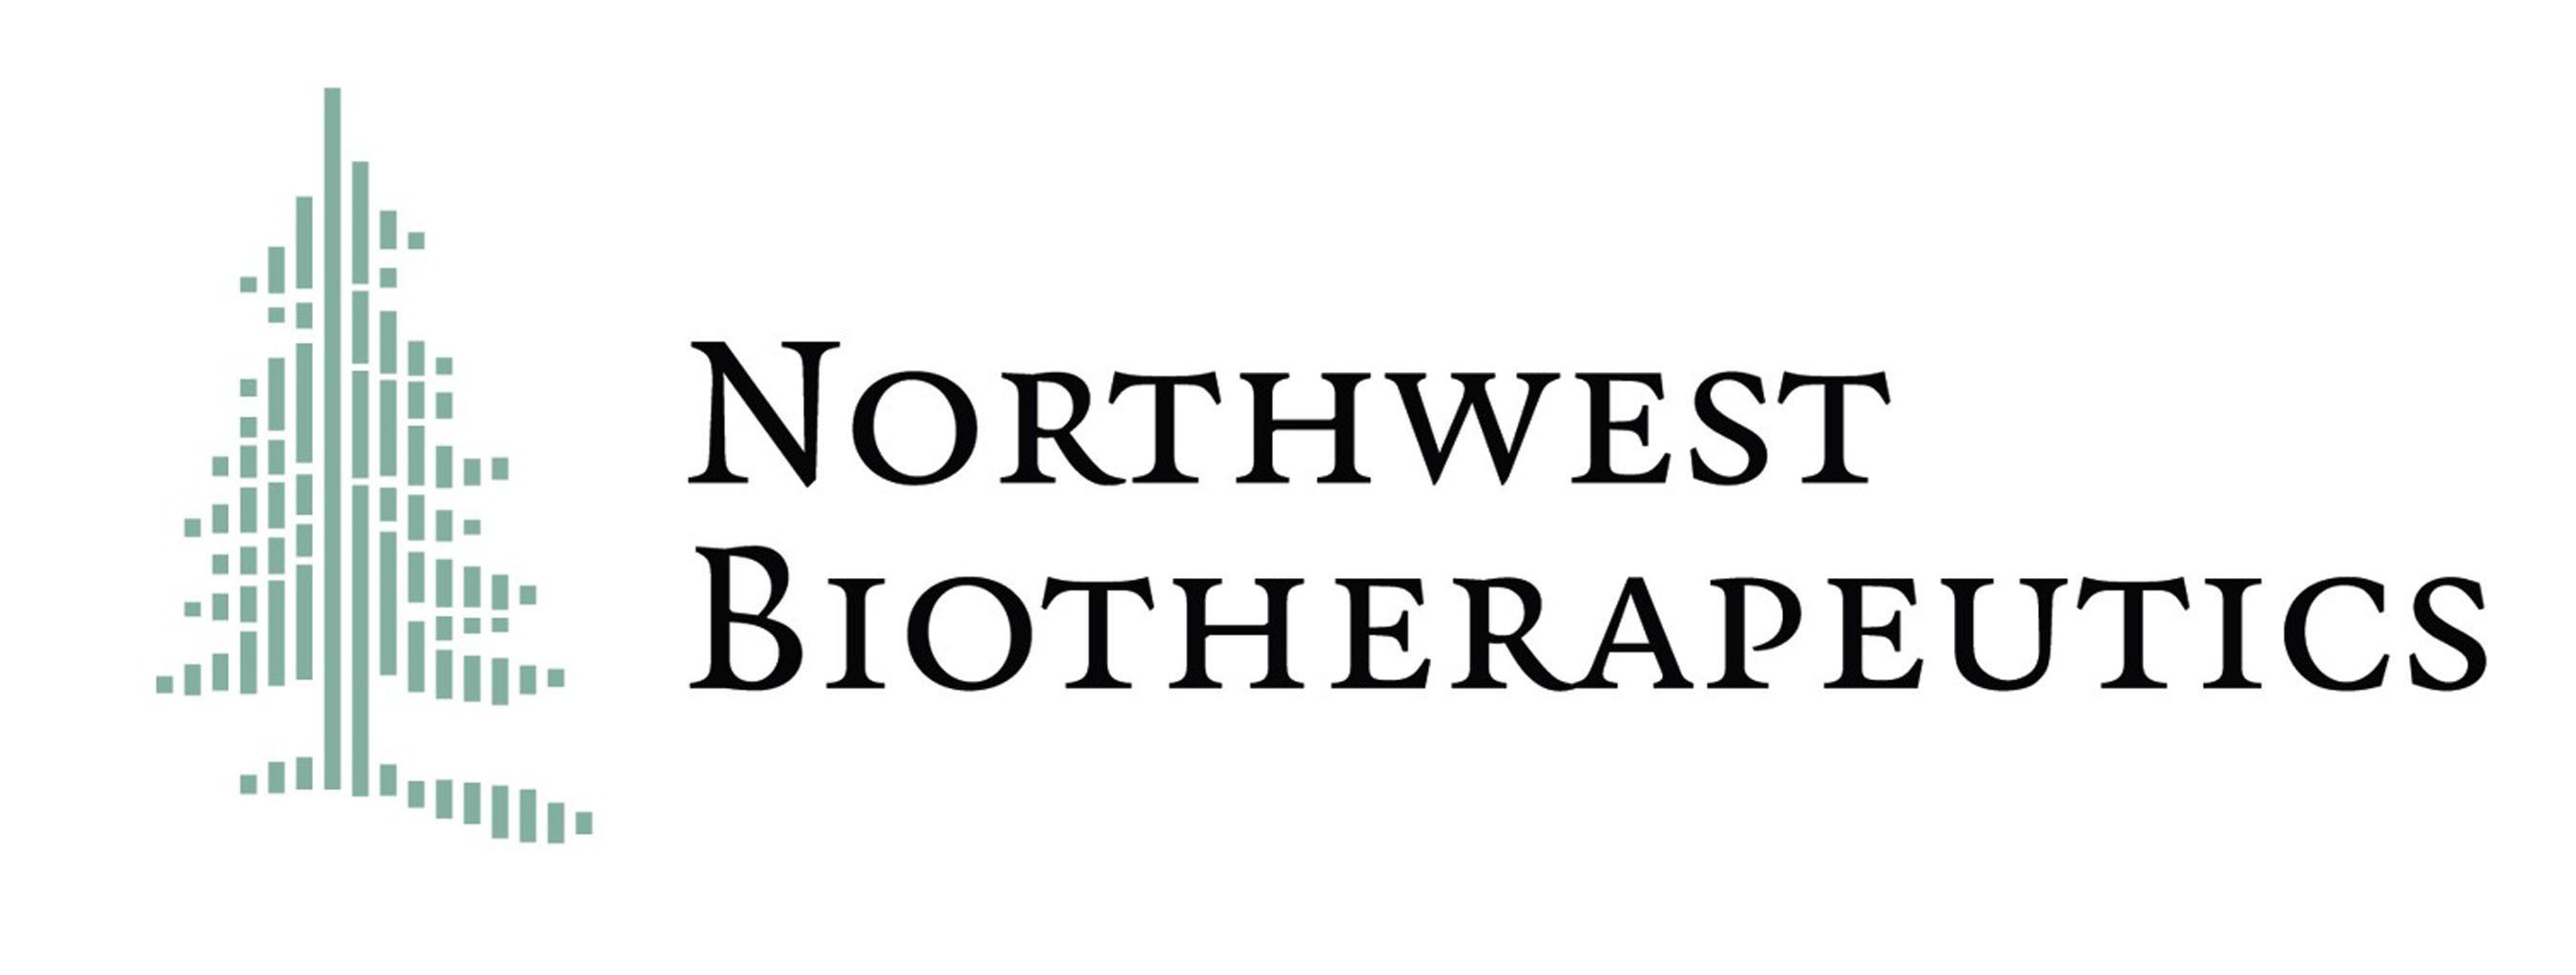 Northwest Biotherapeutics Logo.